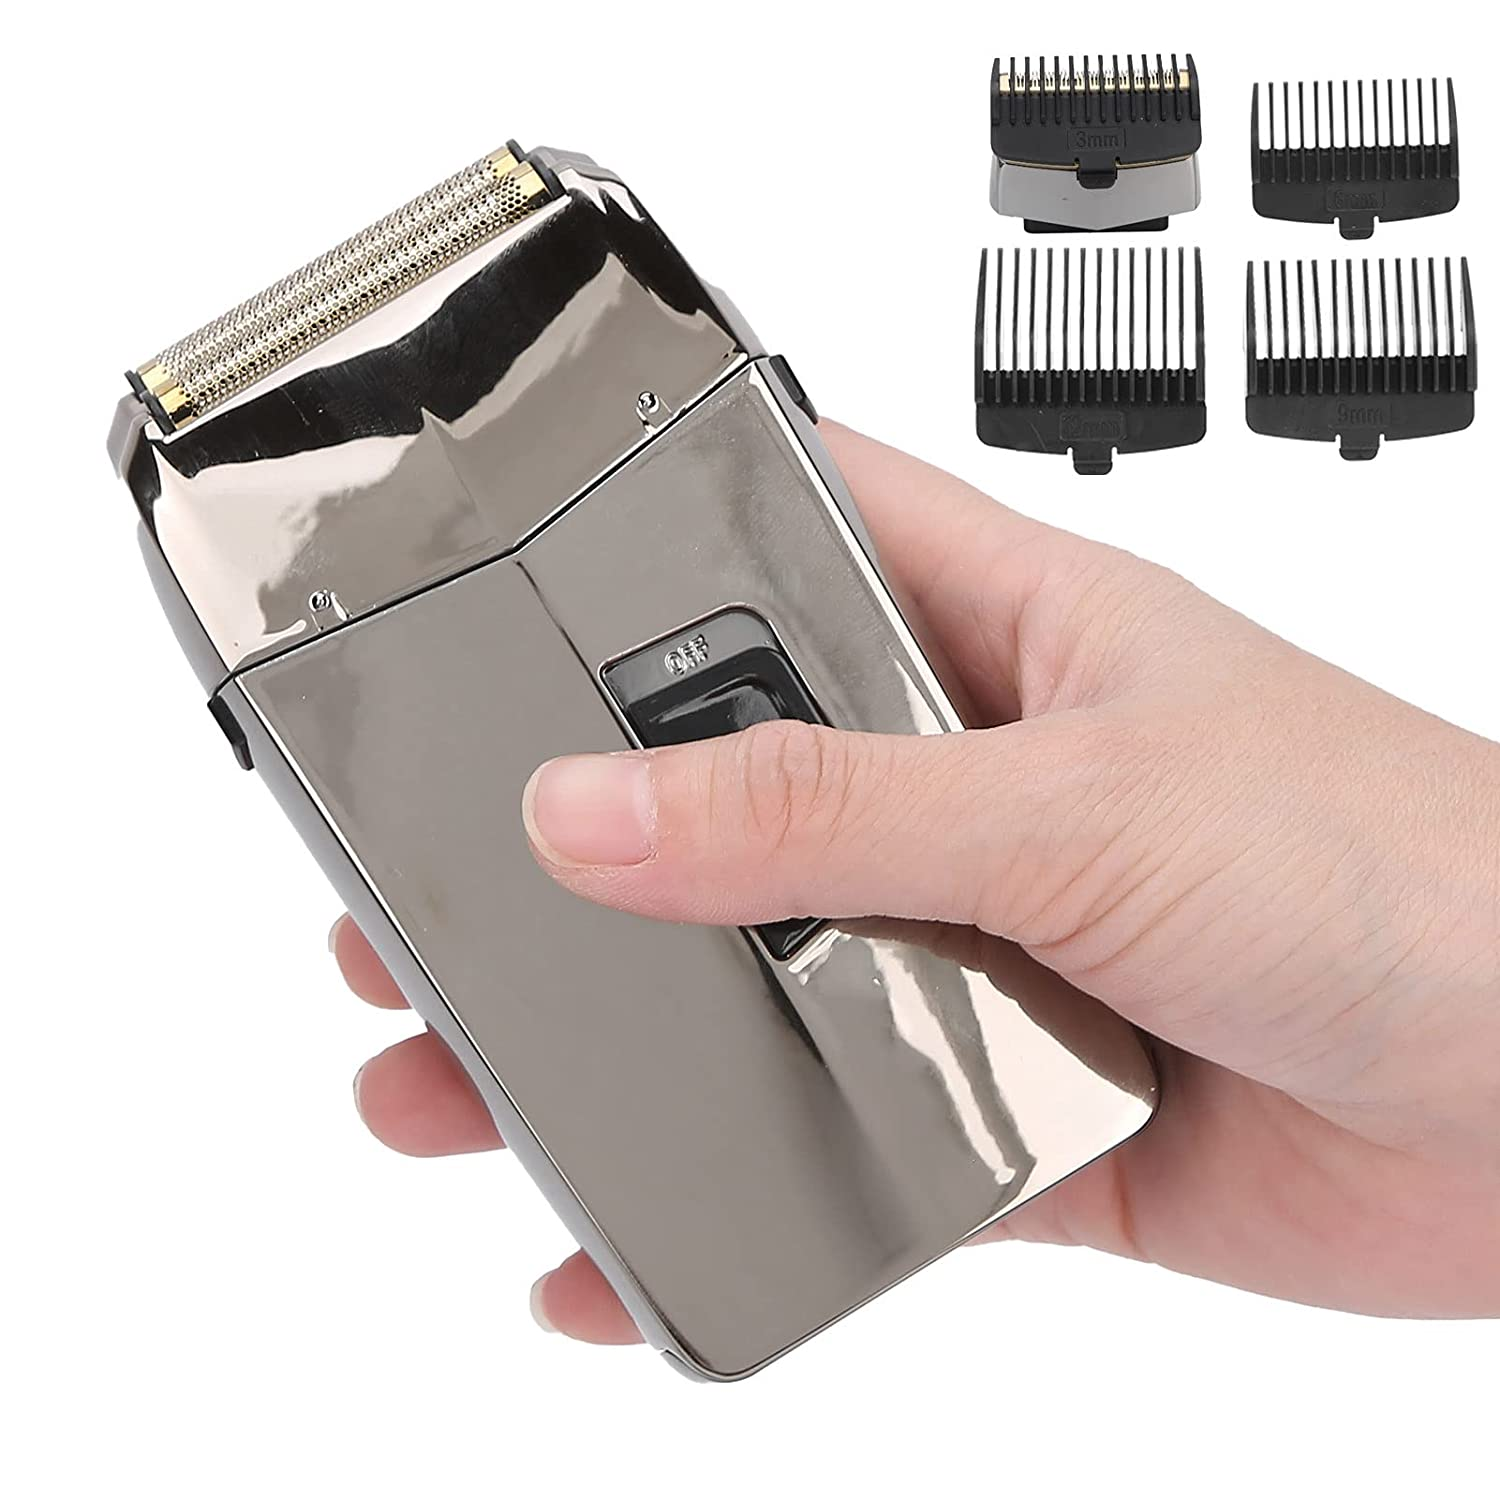 Head Shaver Professional USB Fees free!! Waterproof Charging Electric Durab Max 84% OFF